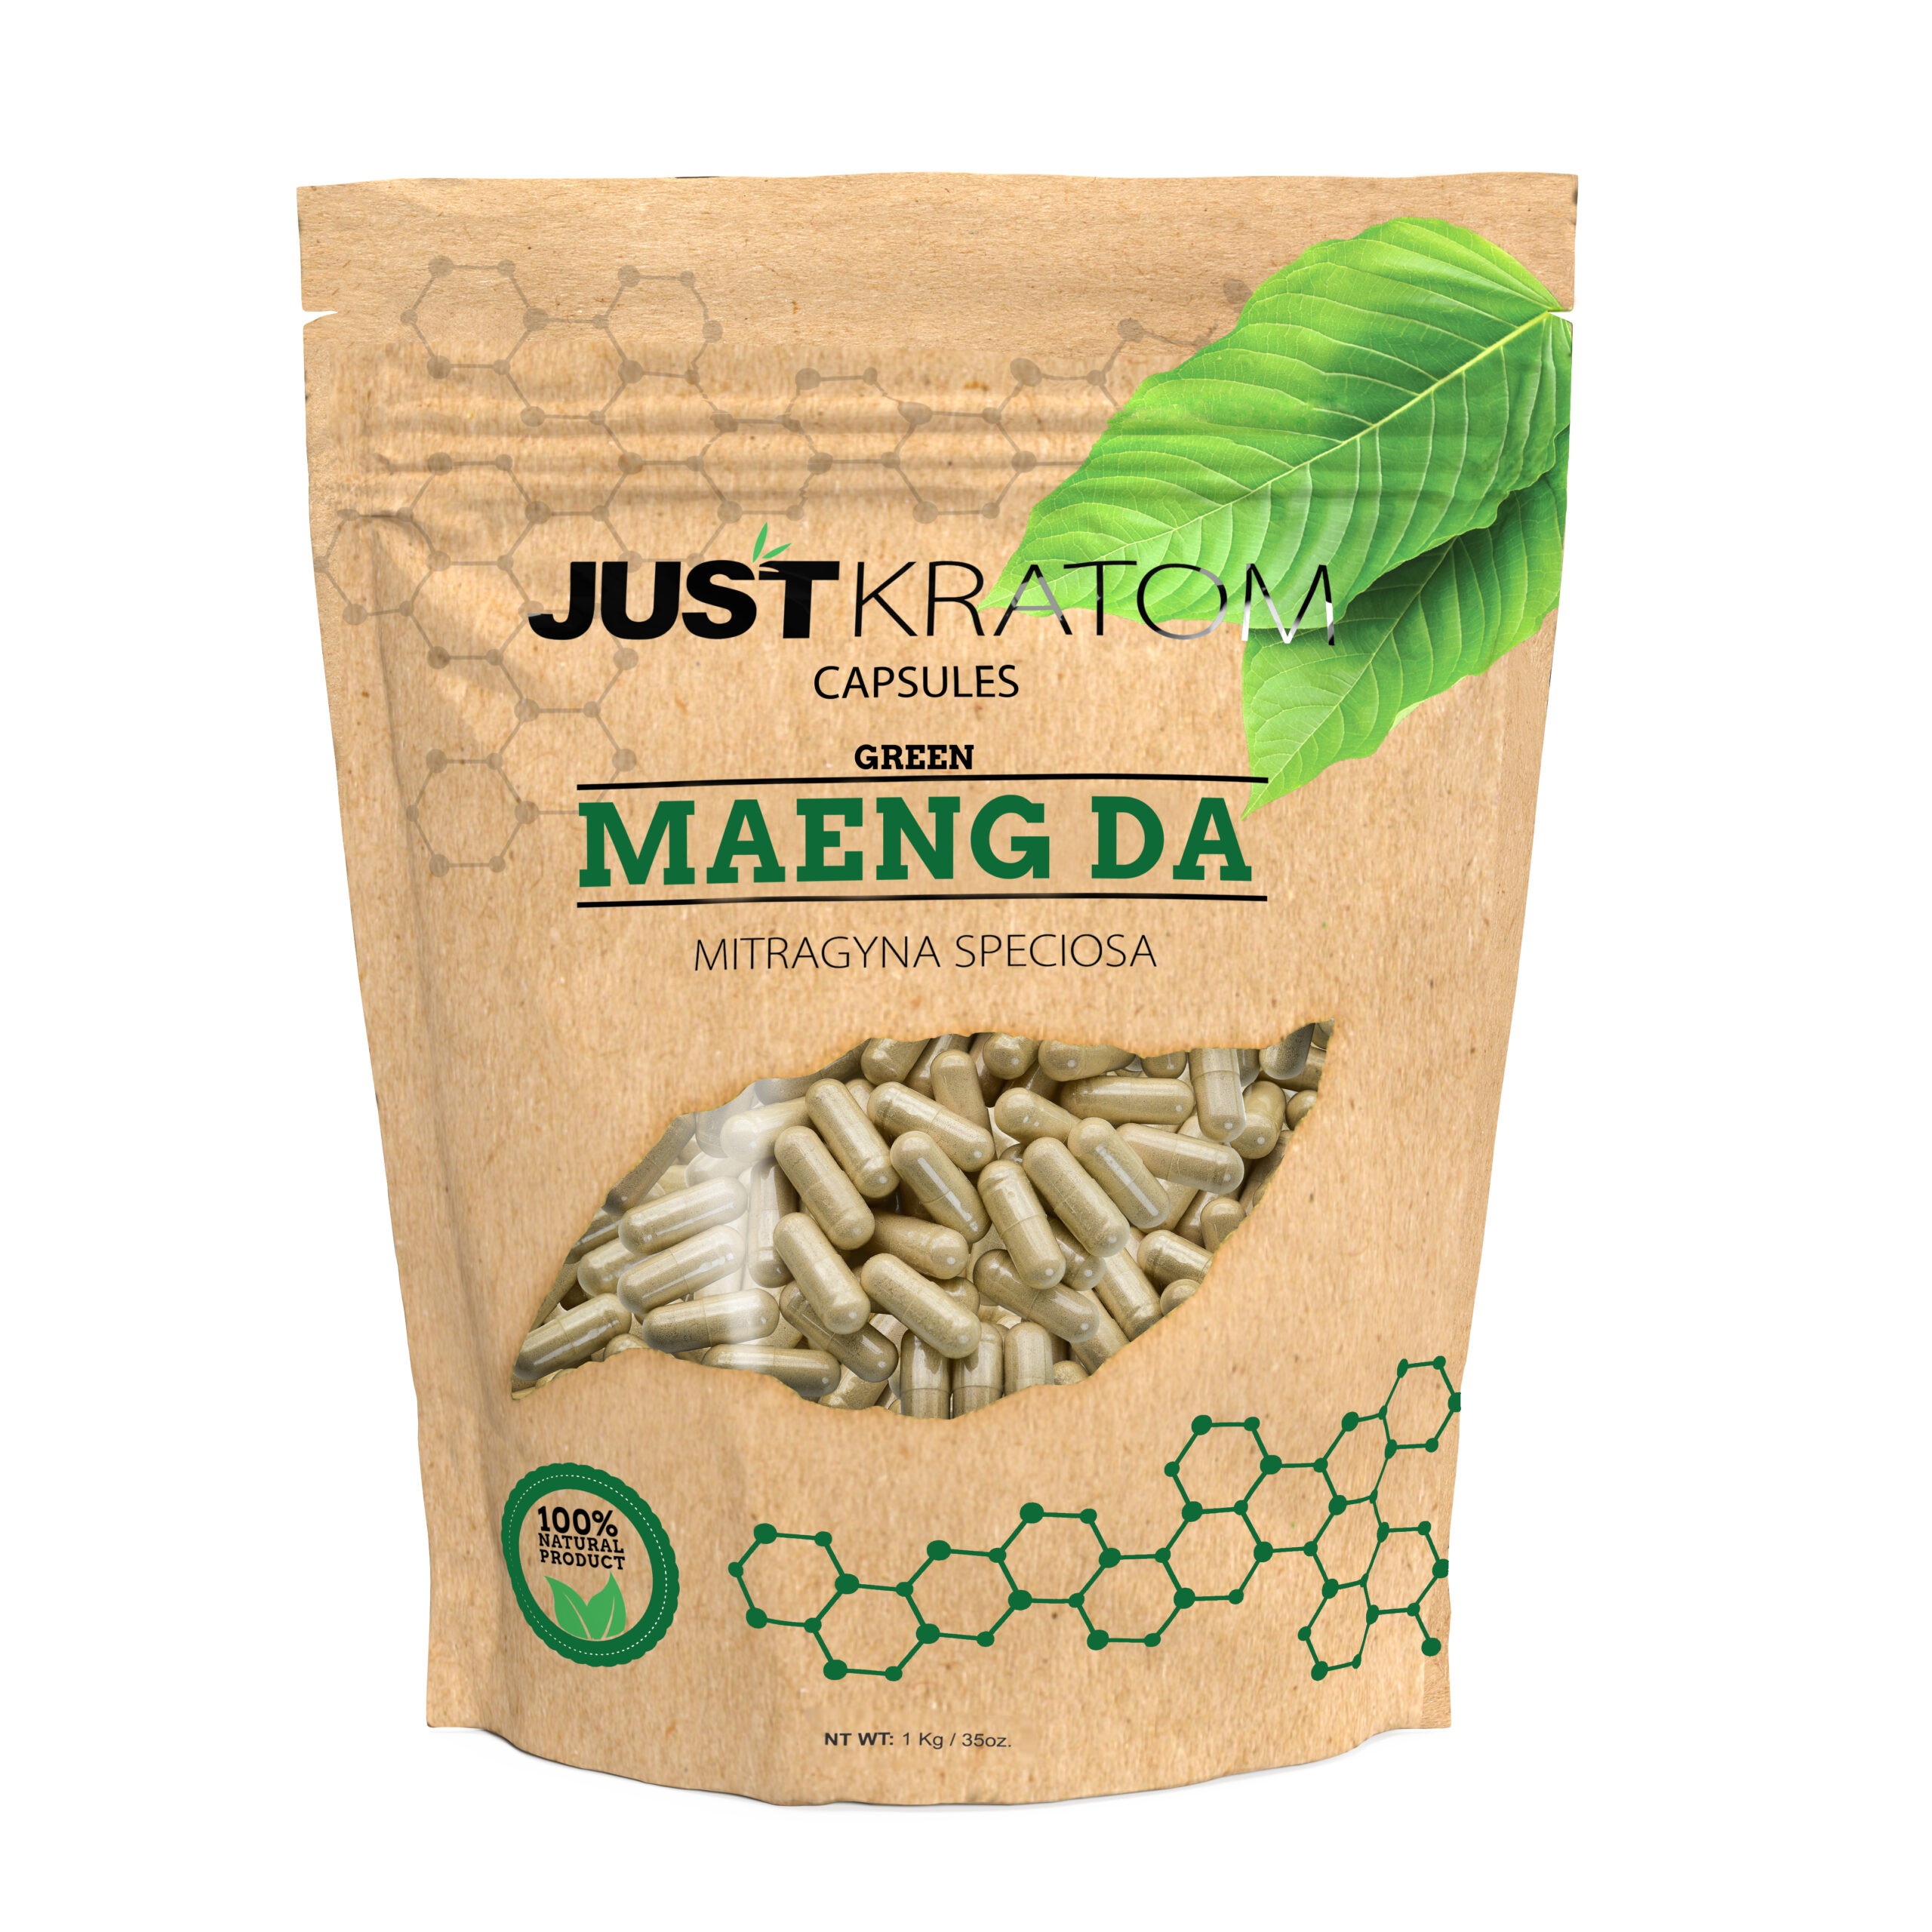 What Are The Side Effects Of Kratom?